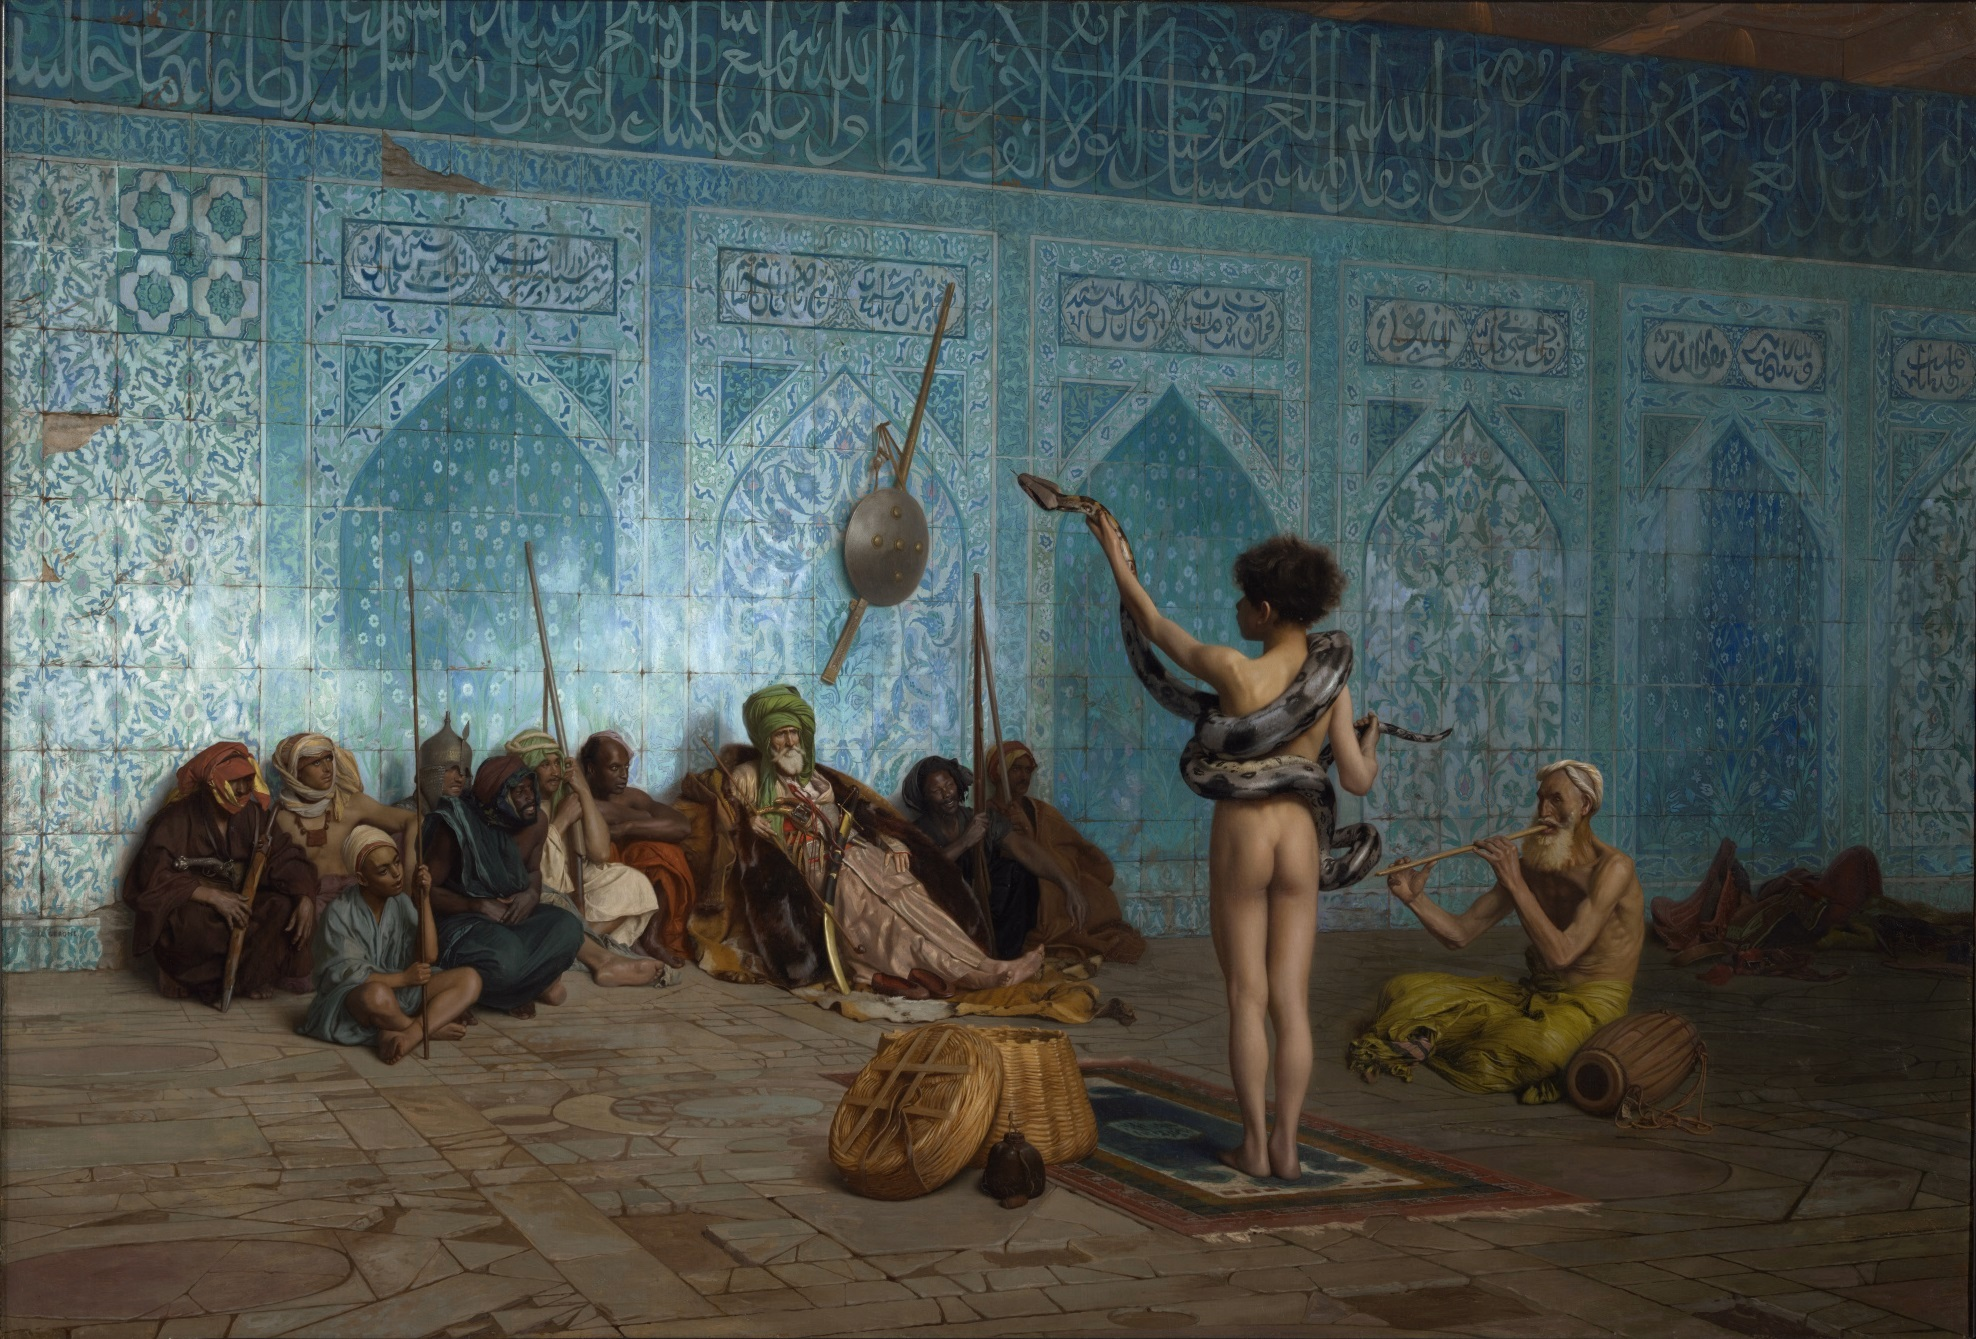 """The Snake Charmer"" is an orientalist 19th century painting by French artist Jean-Léon Gérôme. (Wikimedia)"